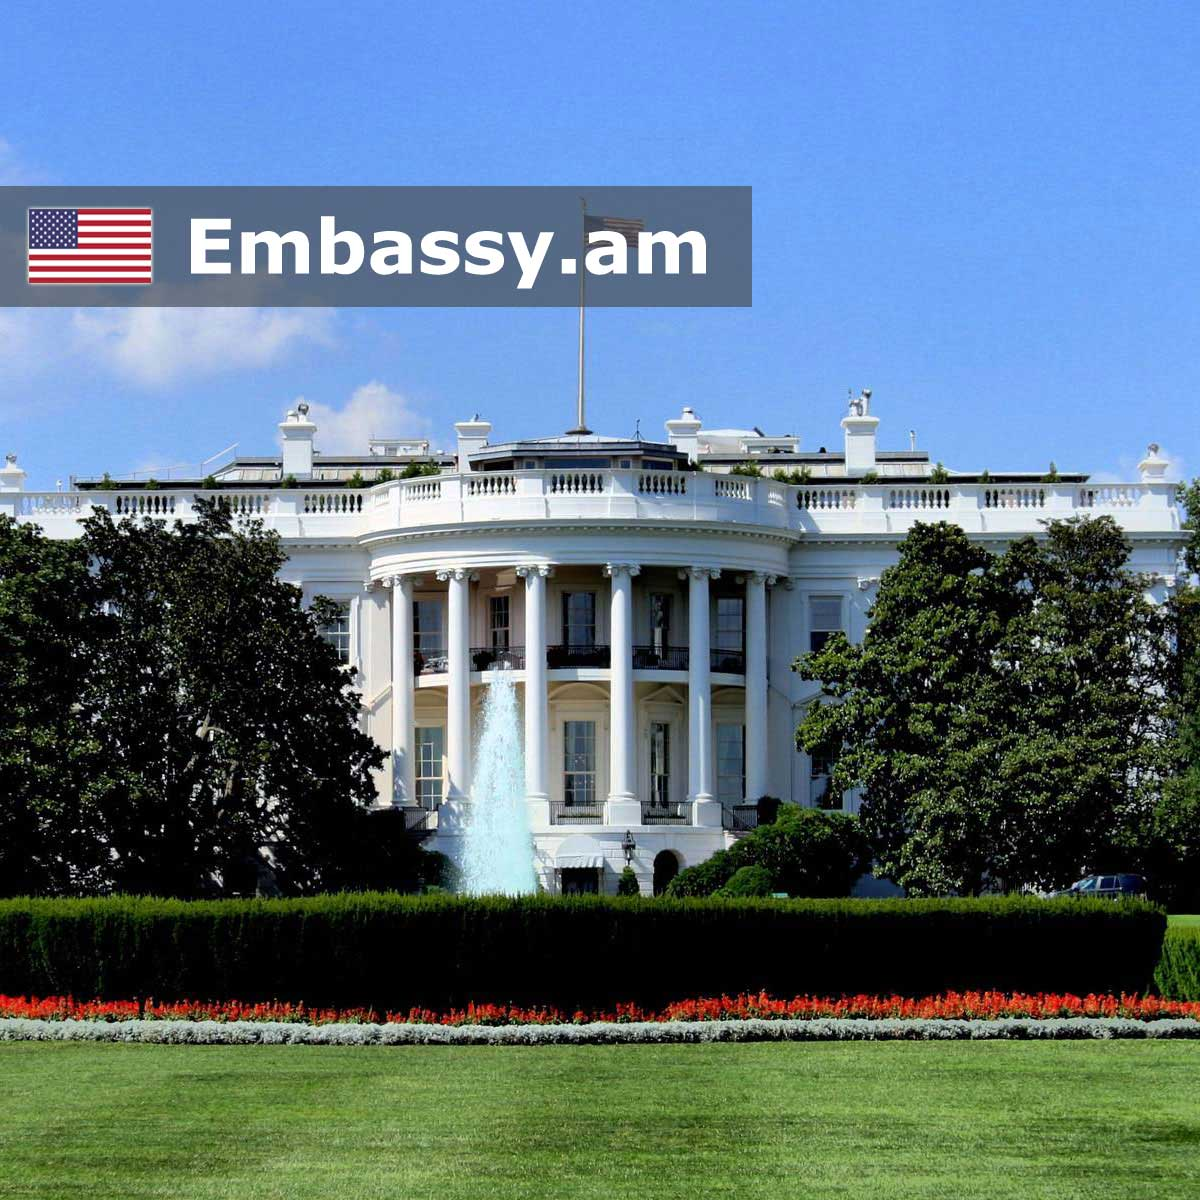 Washington DC - Hotels in United States of America - Embassy.am